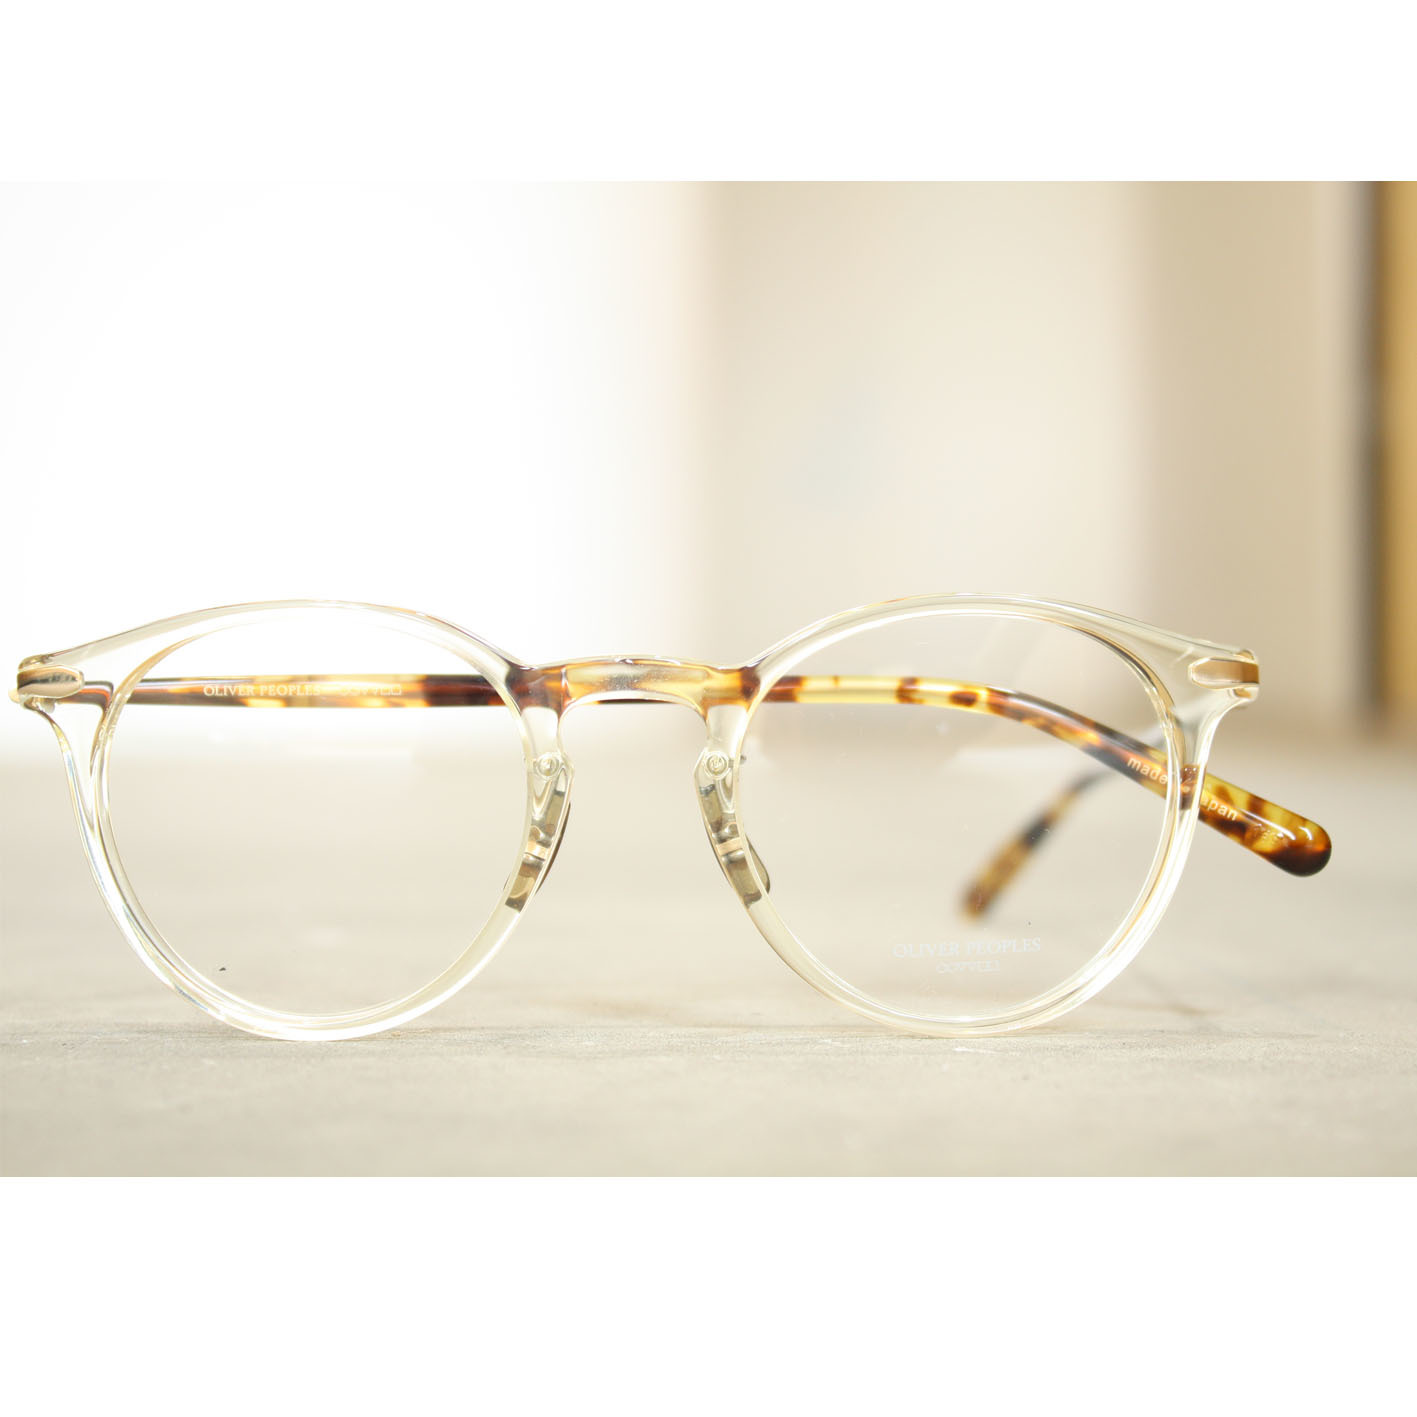 OLIVER PEOPLES 2016 NEW ARRIVAL_f0208675_16273465.jpg